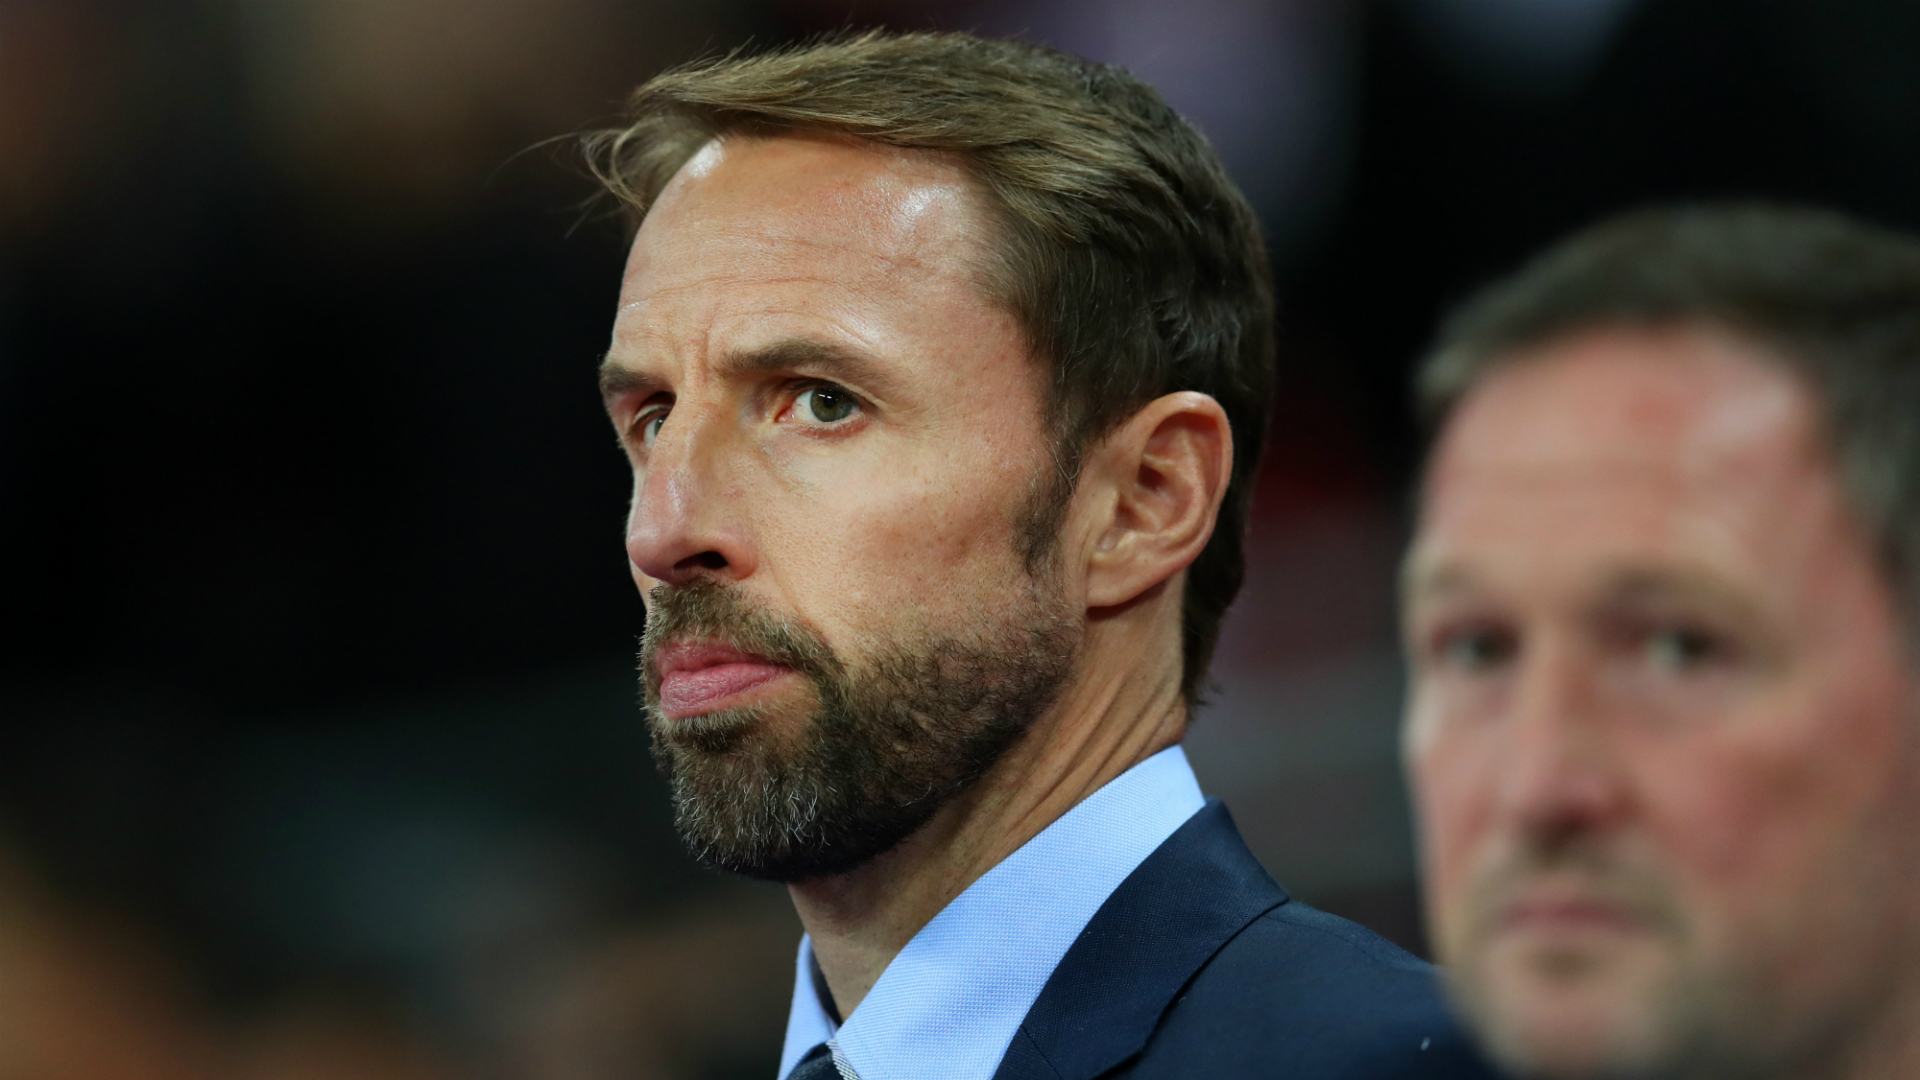 Southgate unwilling to commit to England beyond Euro 2020